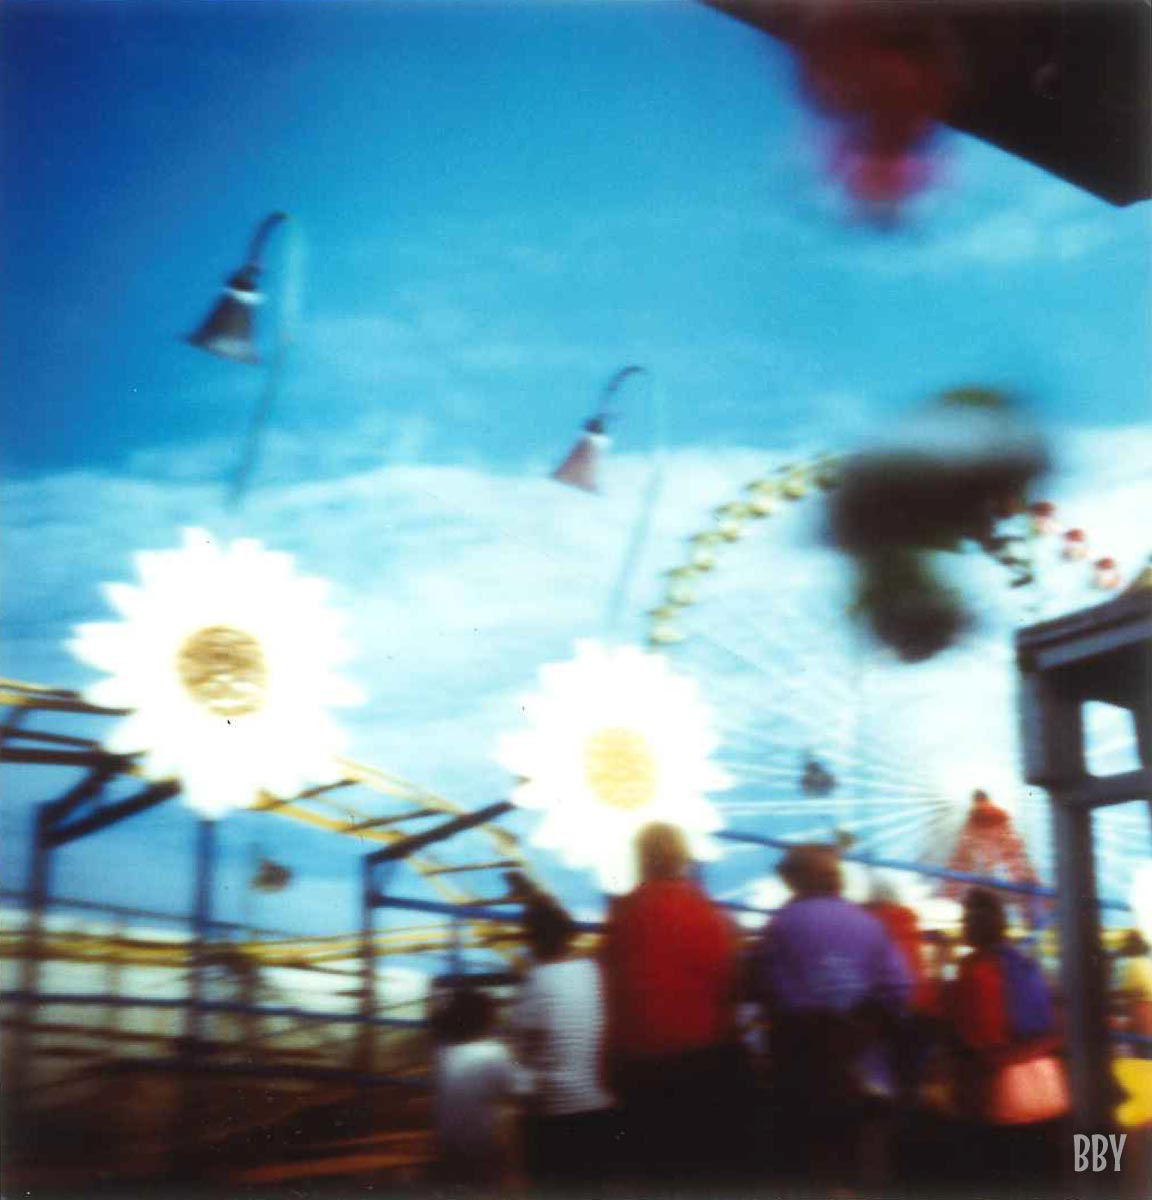 stenope, pinhole, slow photography, chambre noire, daisy, fête foraine, manège, carnival, merry-go-round